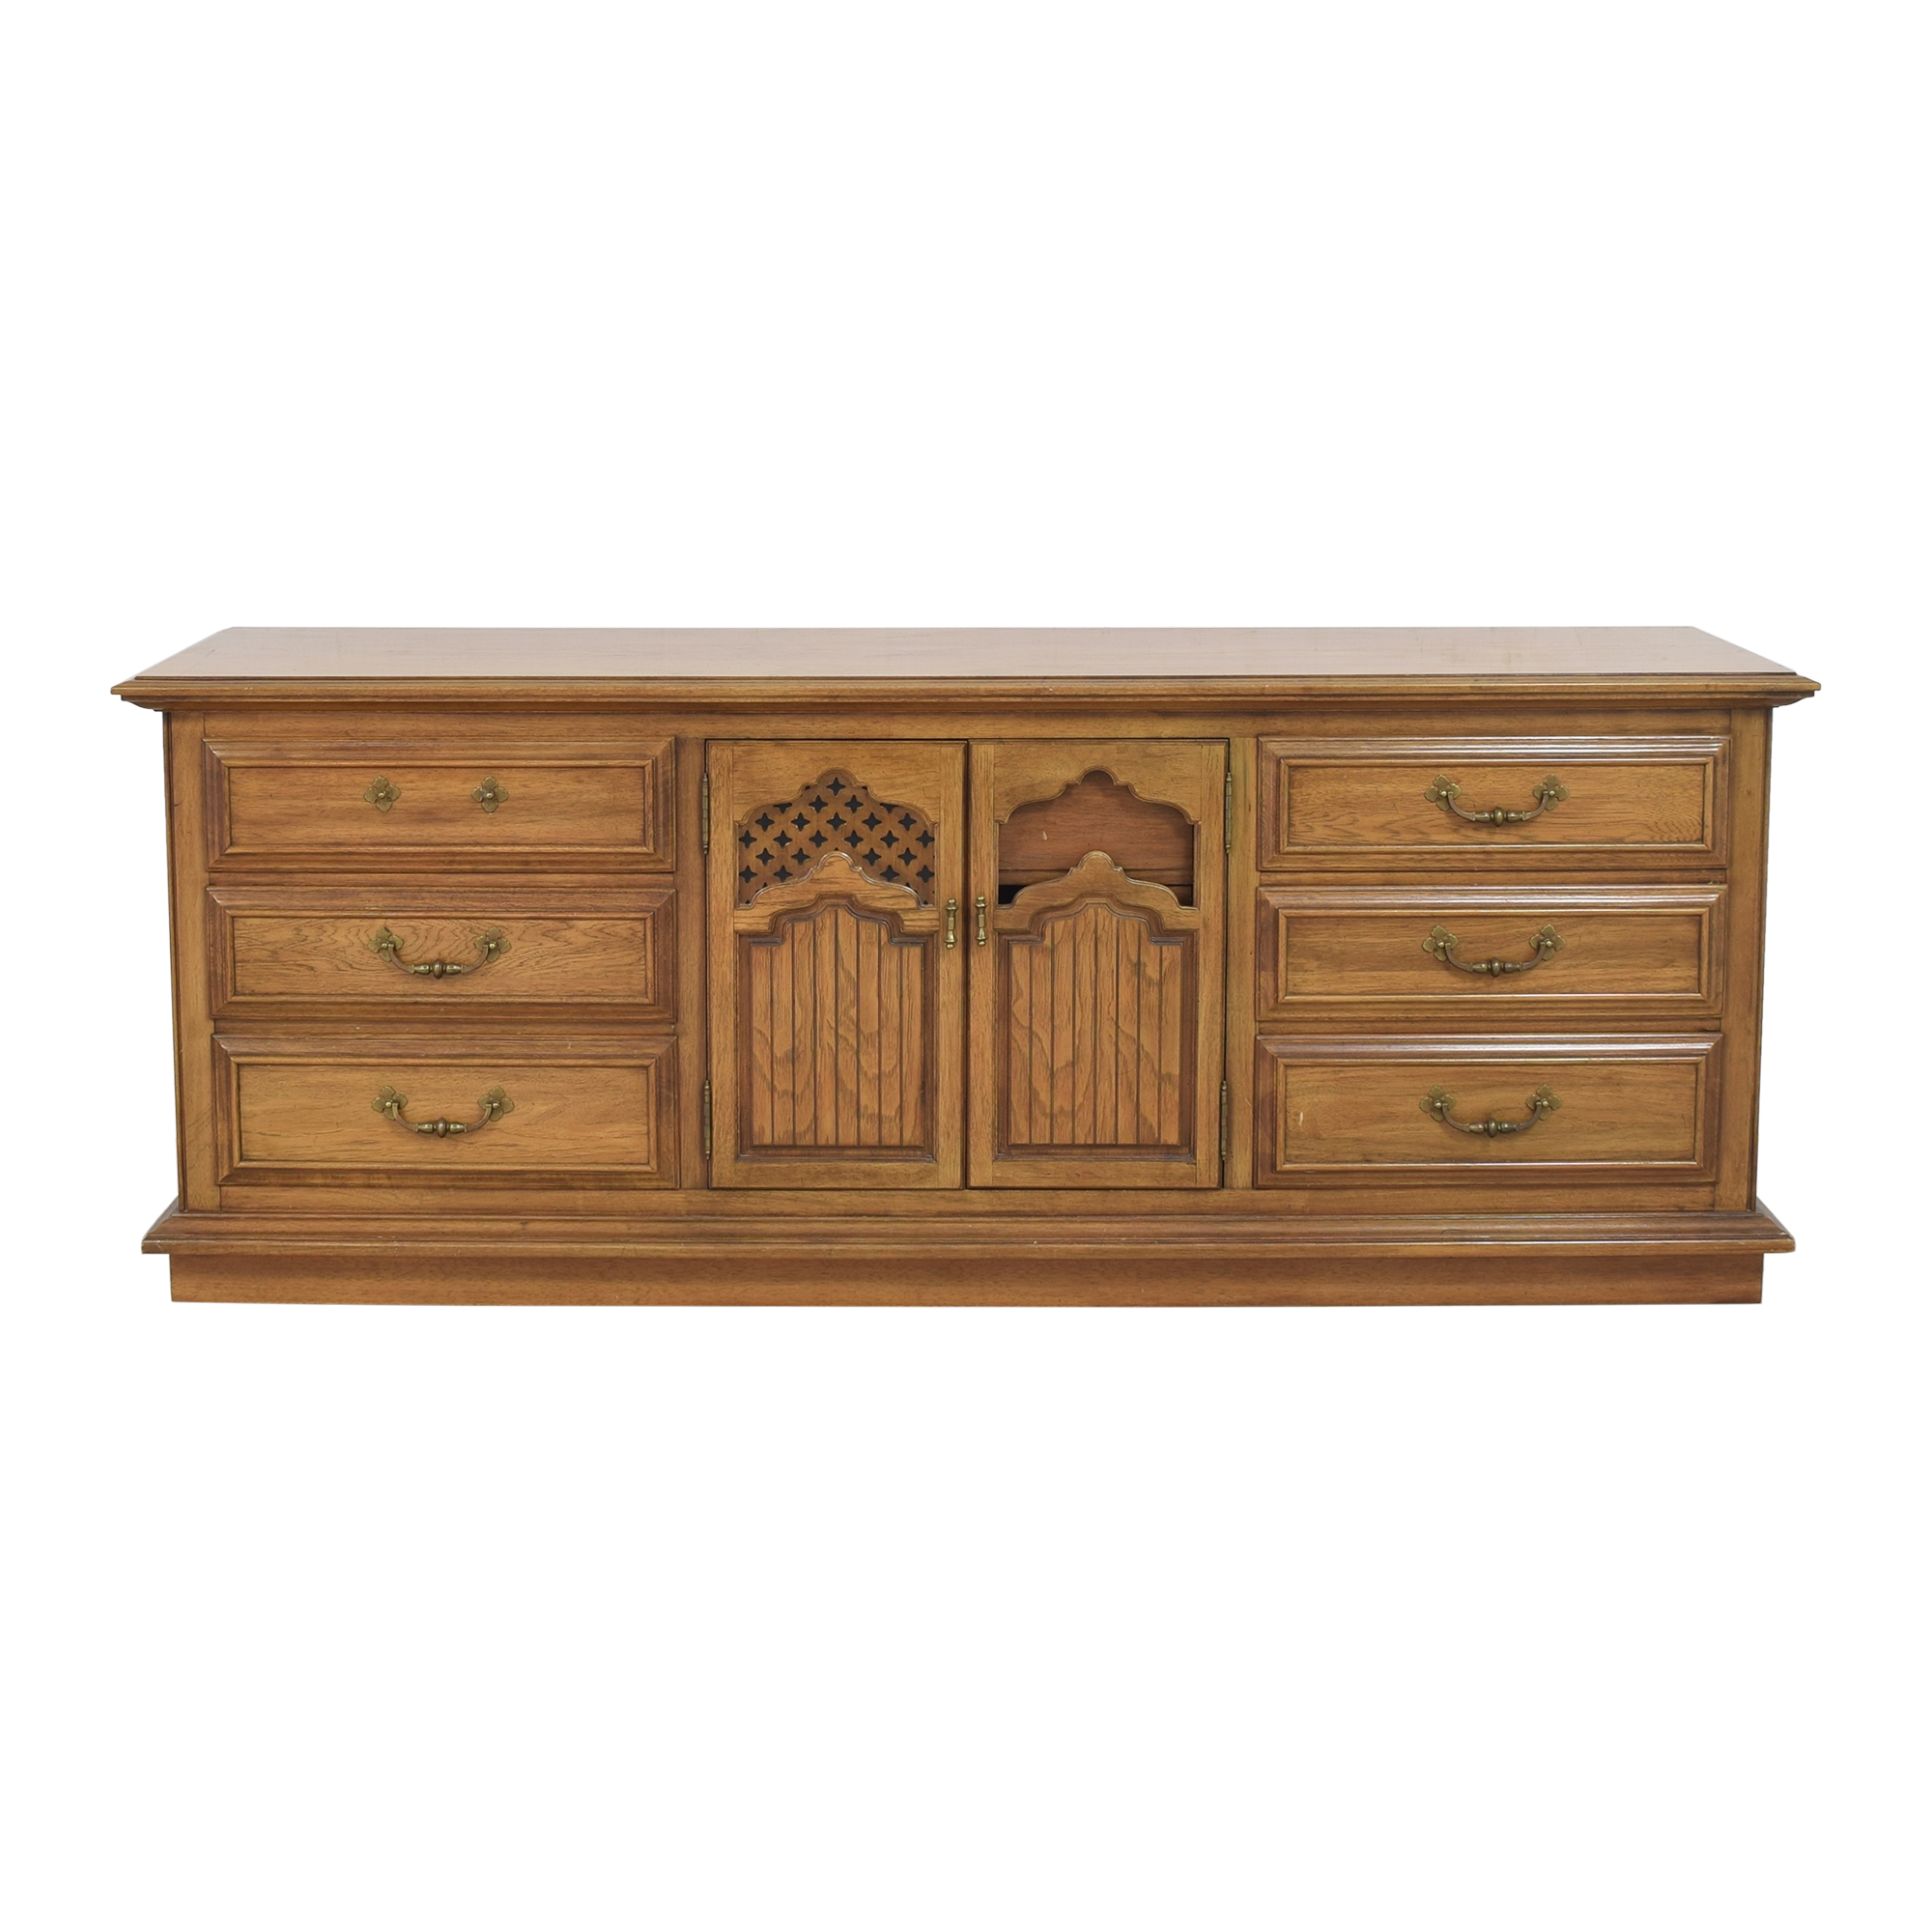 Thomasville Thomasville Triple Dresser with Cabinet coupon